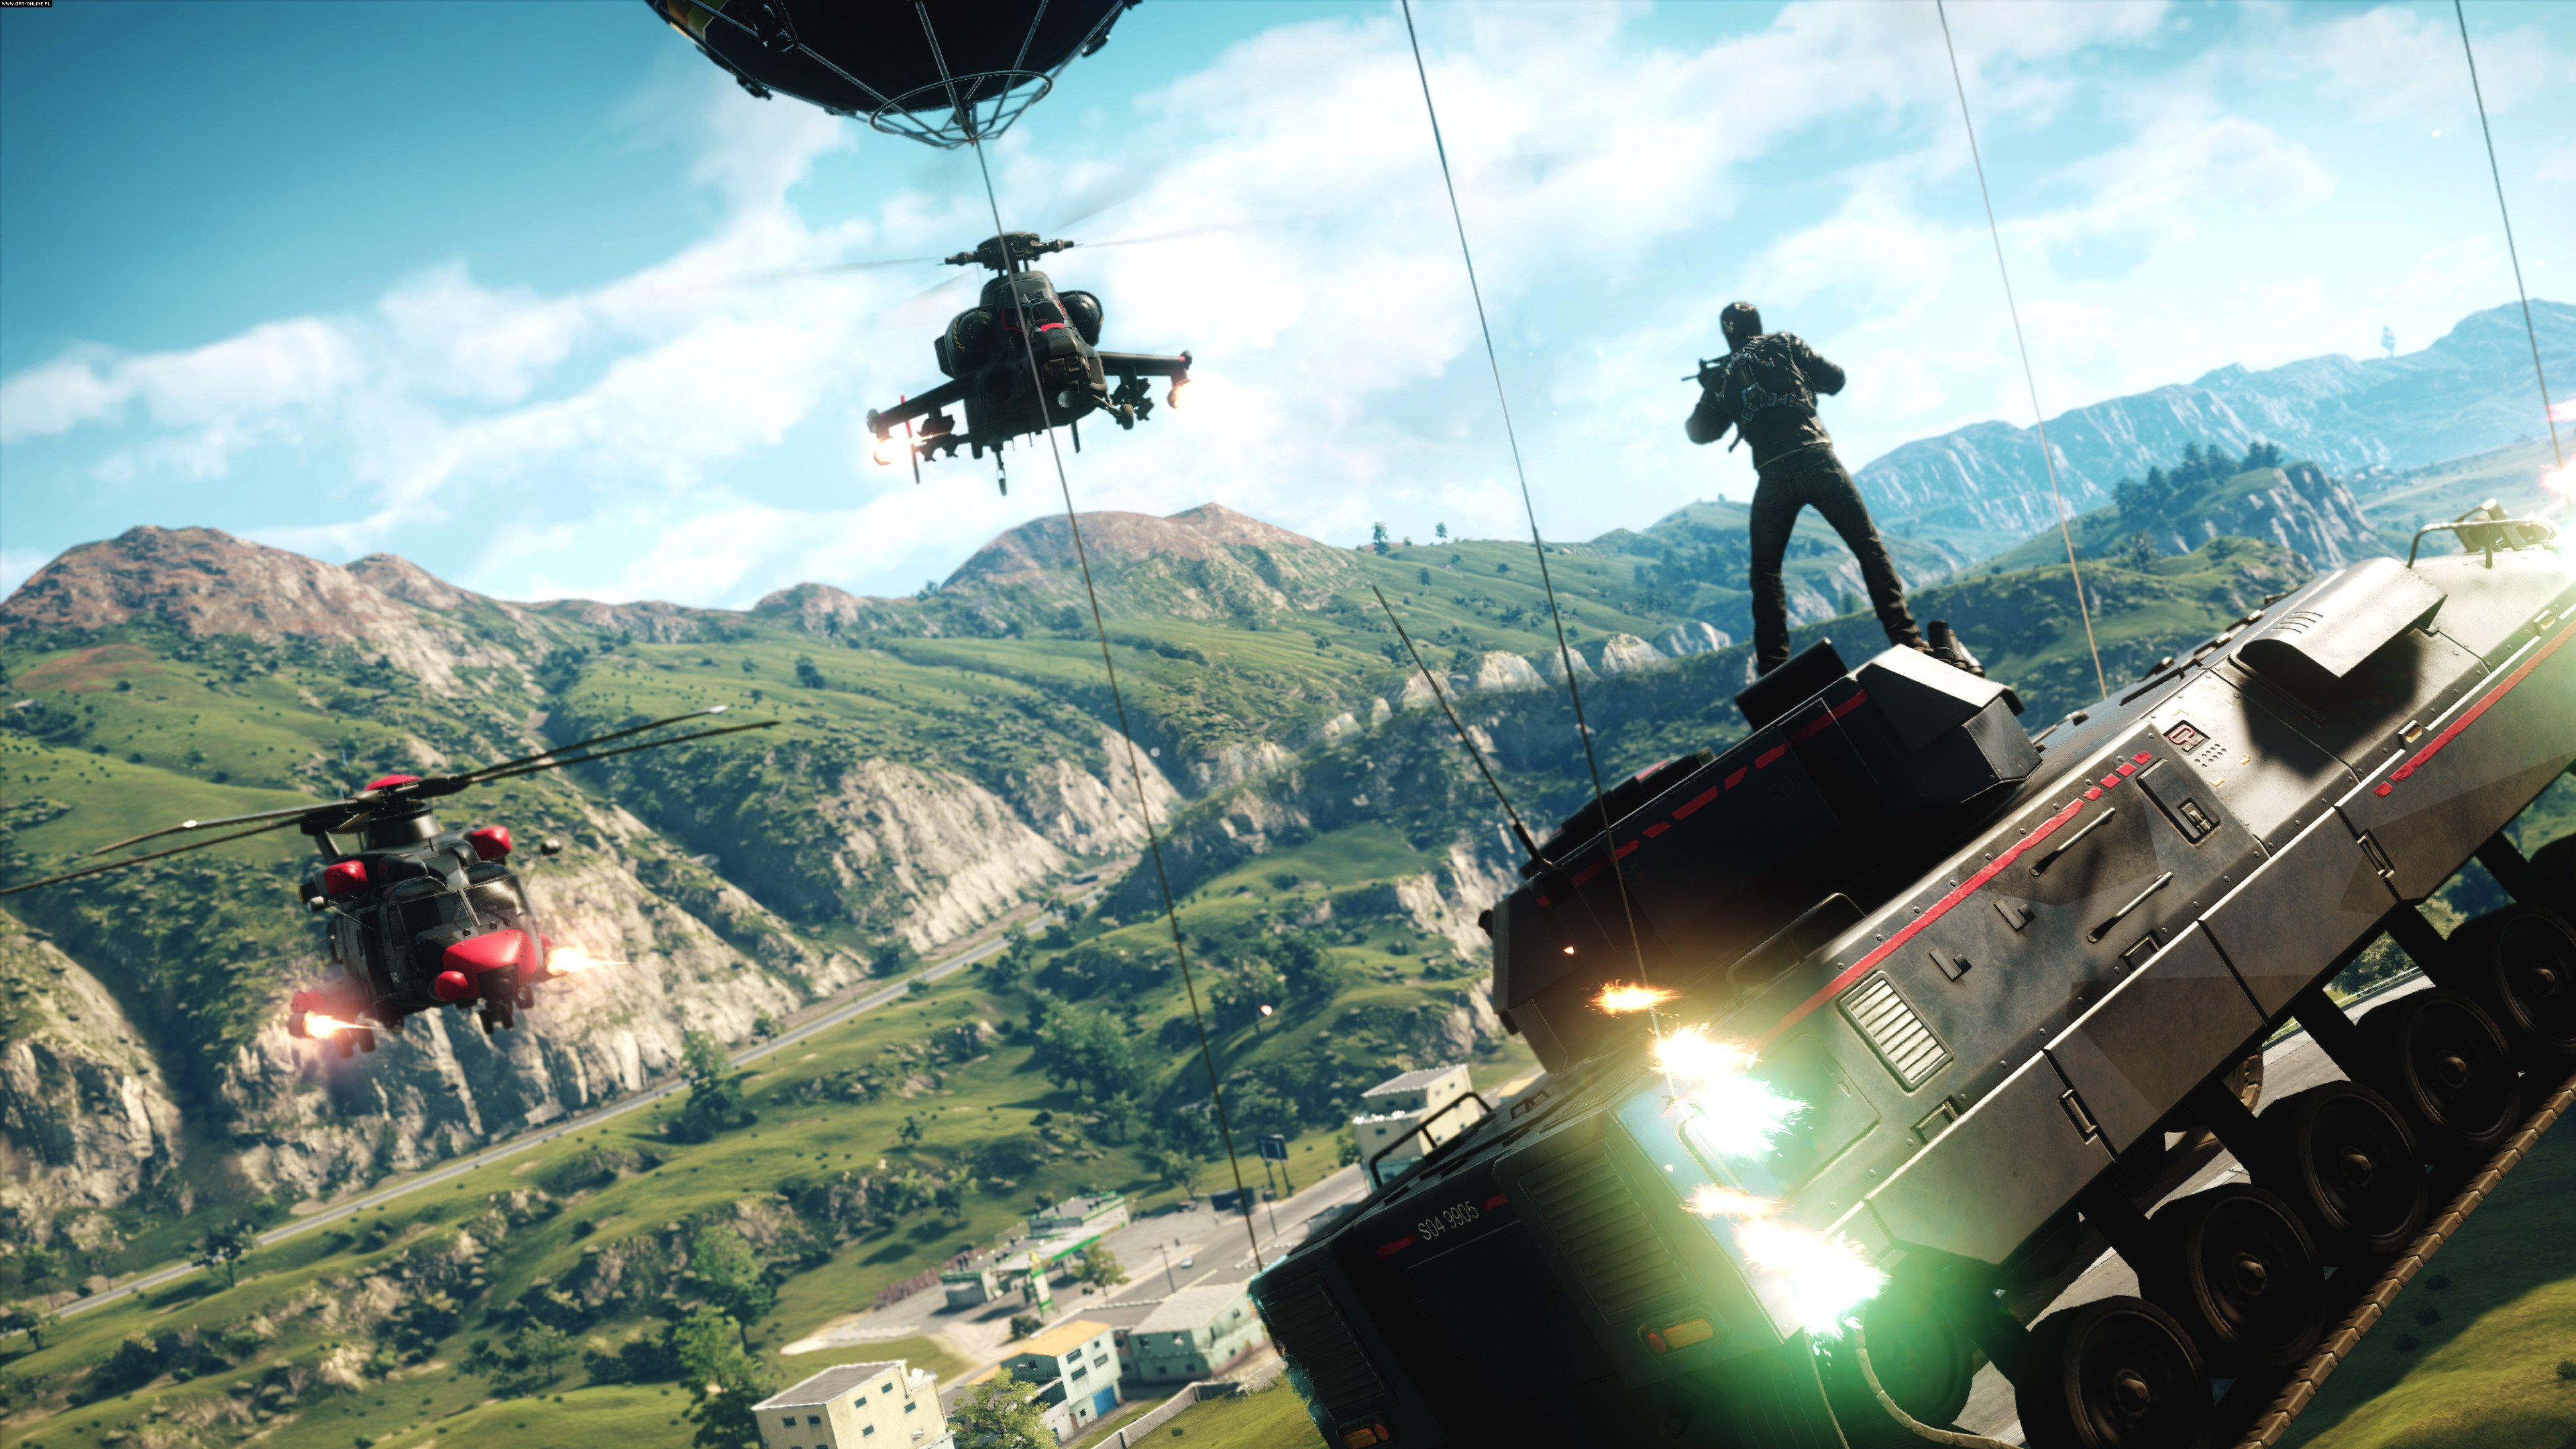 Just Cause 4 PC, PS4, XONE Gry Screen 3/30, Avalanche Studios, Square-Enix / Eidos